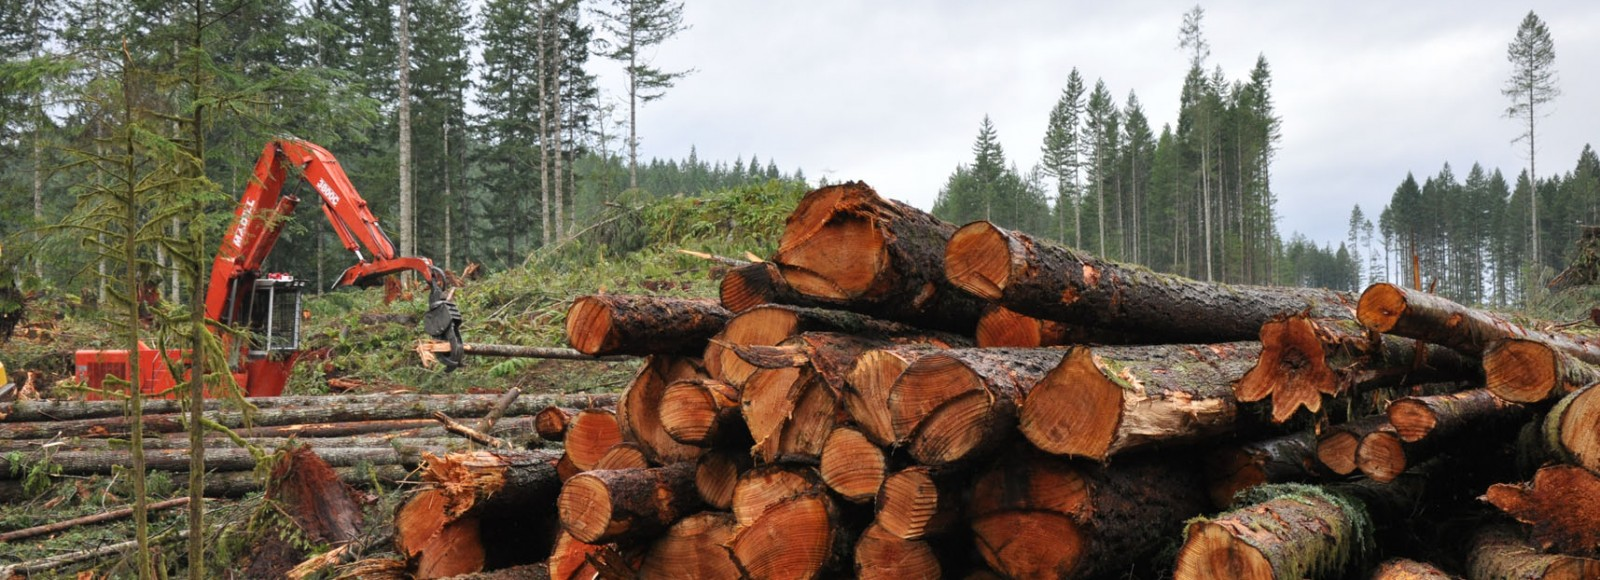 Olympic Forest Products | Powell River  Log Sorting and Grading